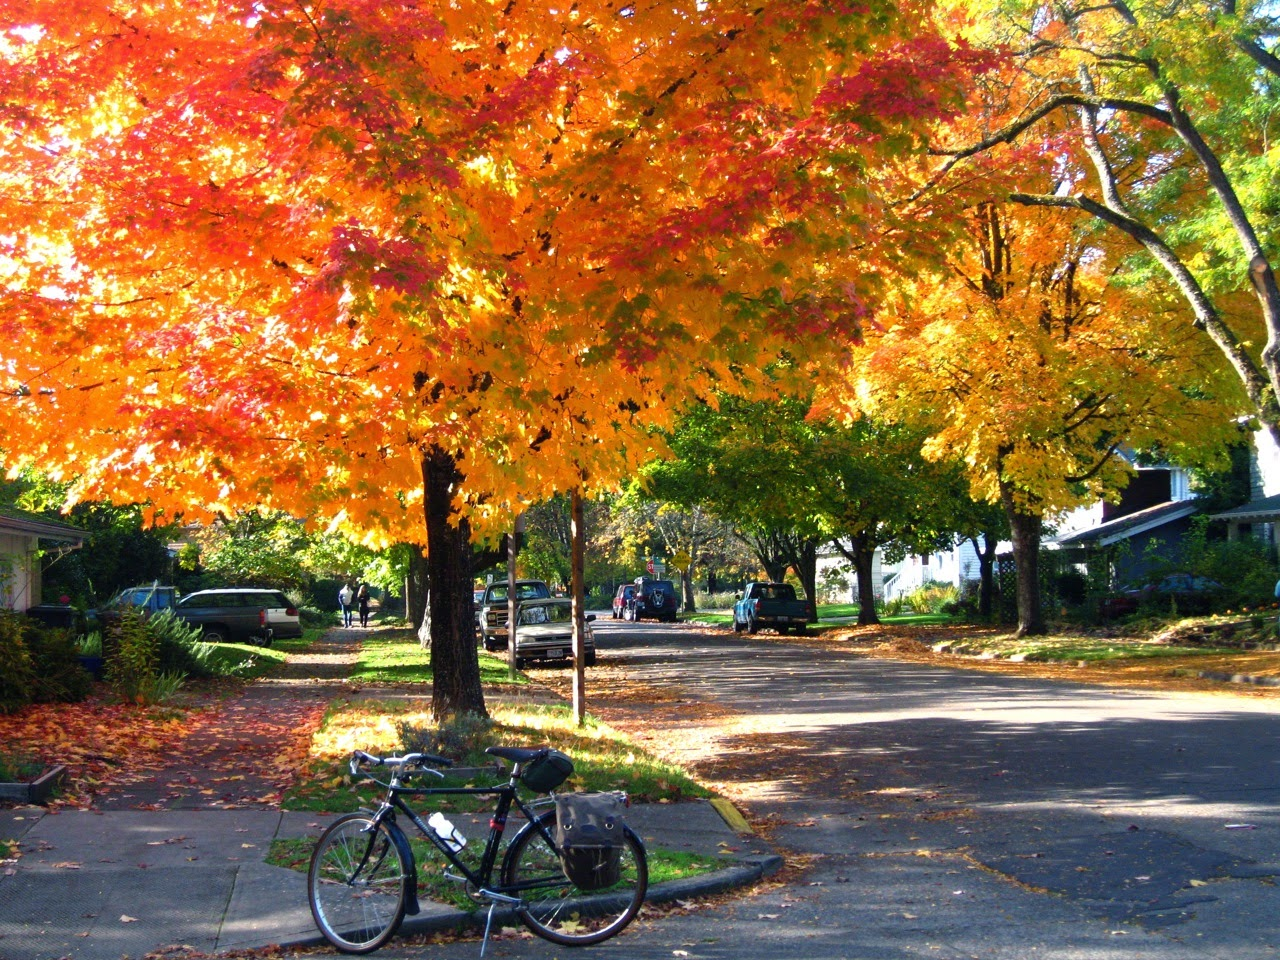 Bridgestone CB-Zip, fall color, Eugene Oregon, bicycle, trees, leaves, autumn, red